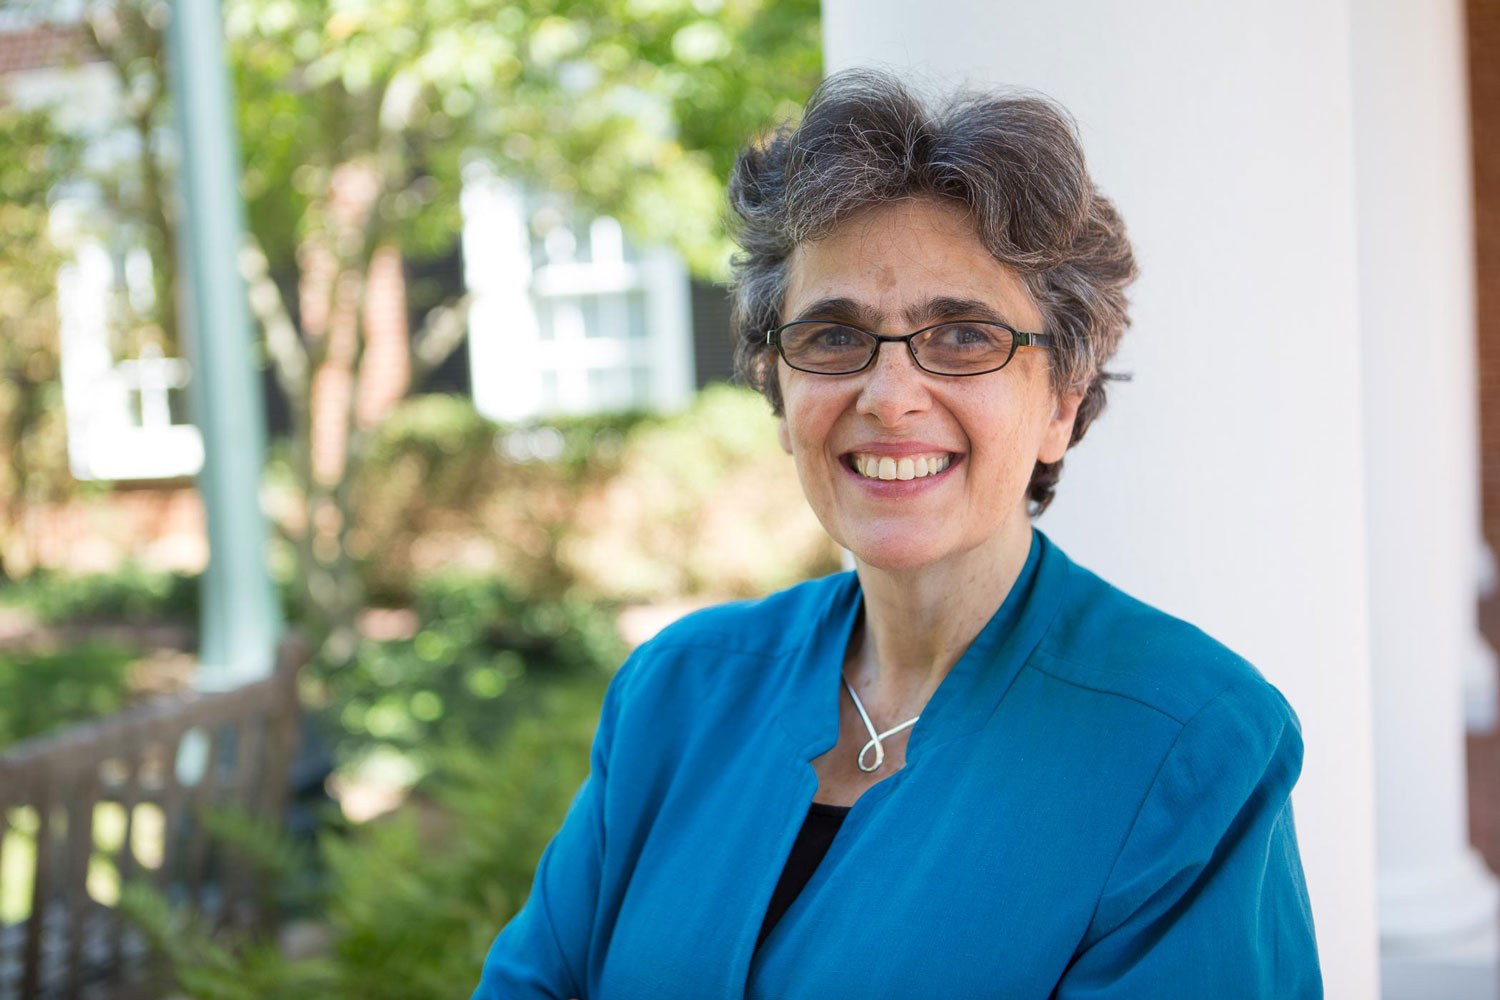 Darden professor of practice Mary Gentile's ethics curriculum has been used in companies, health care education, athletic team leadership programs, police and military training and more.